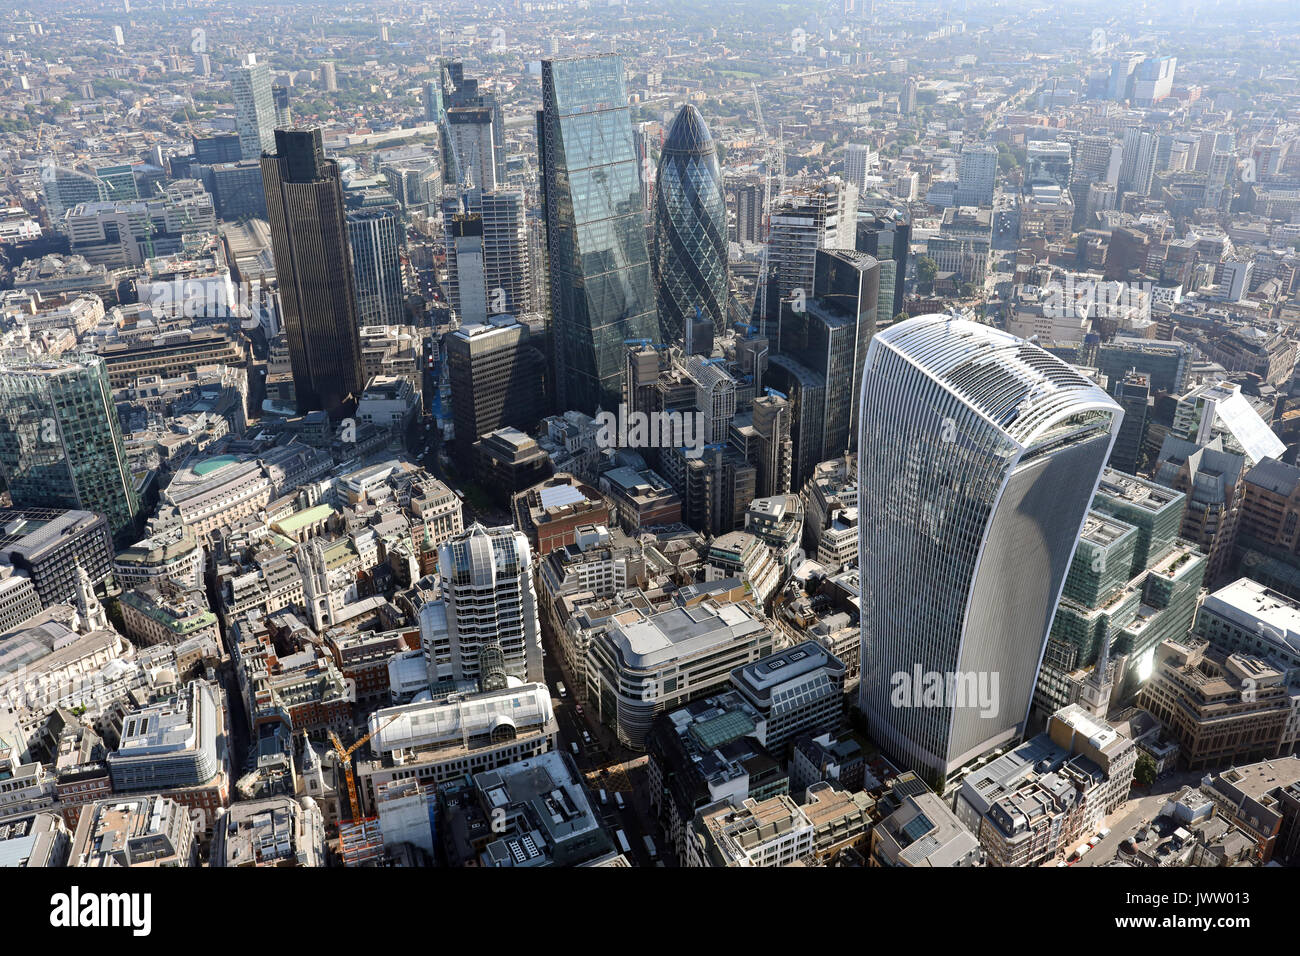 aerial view of The City of London - Stock Image